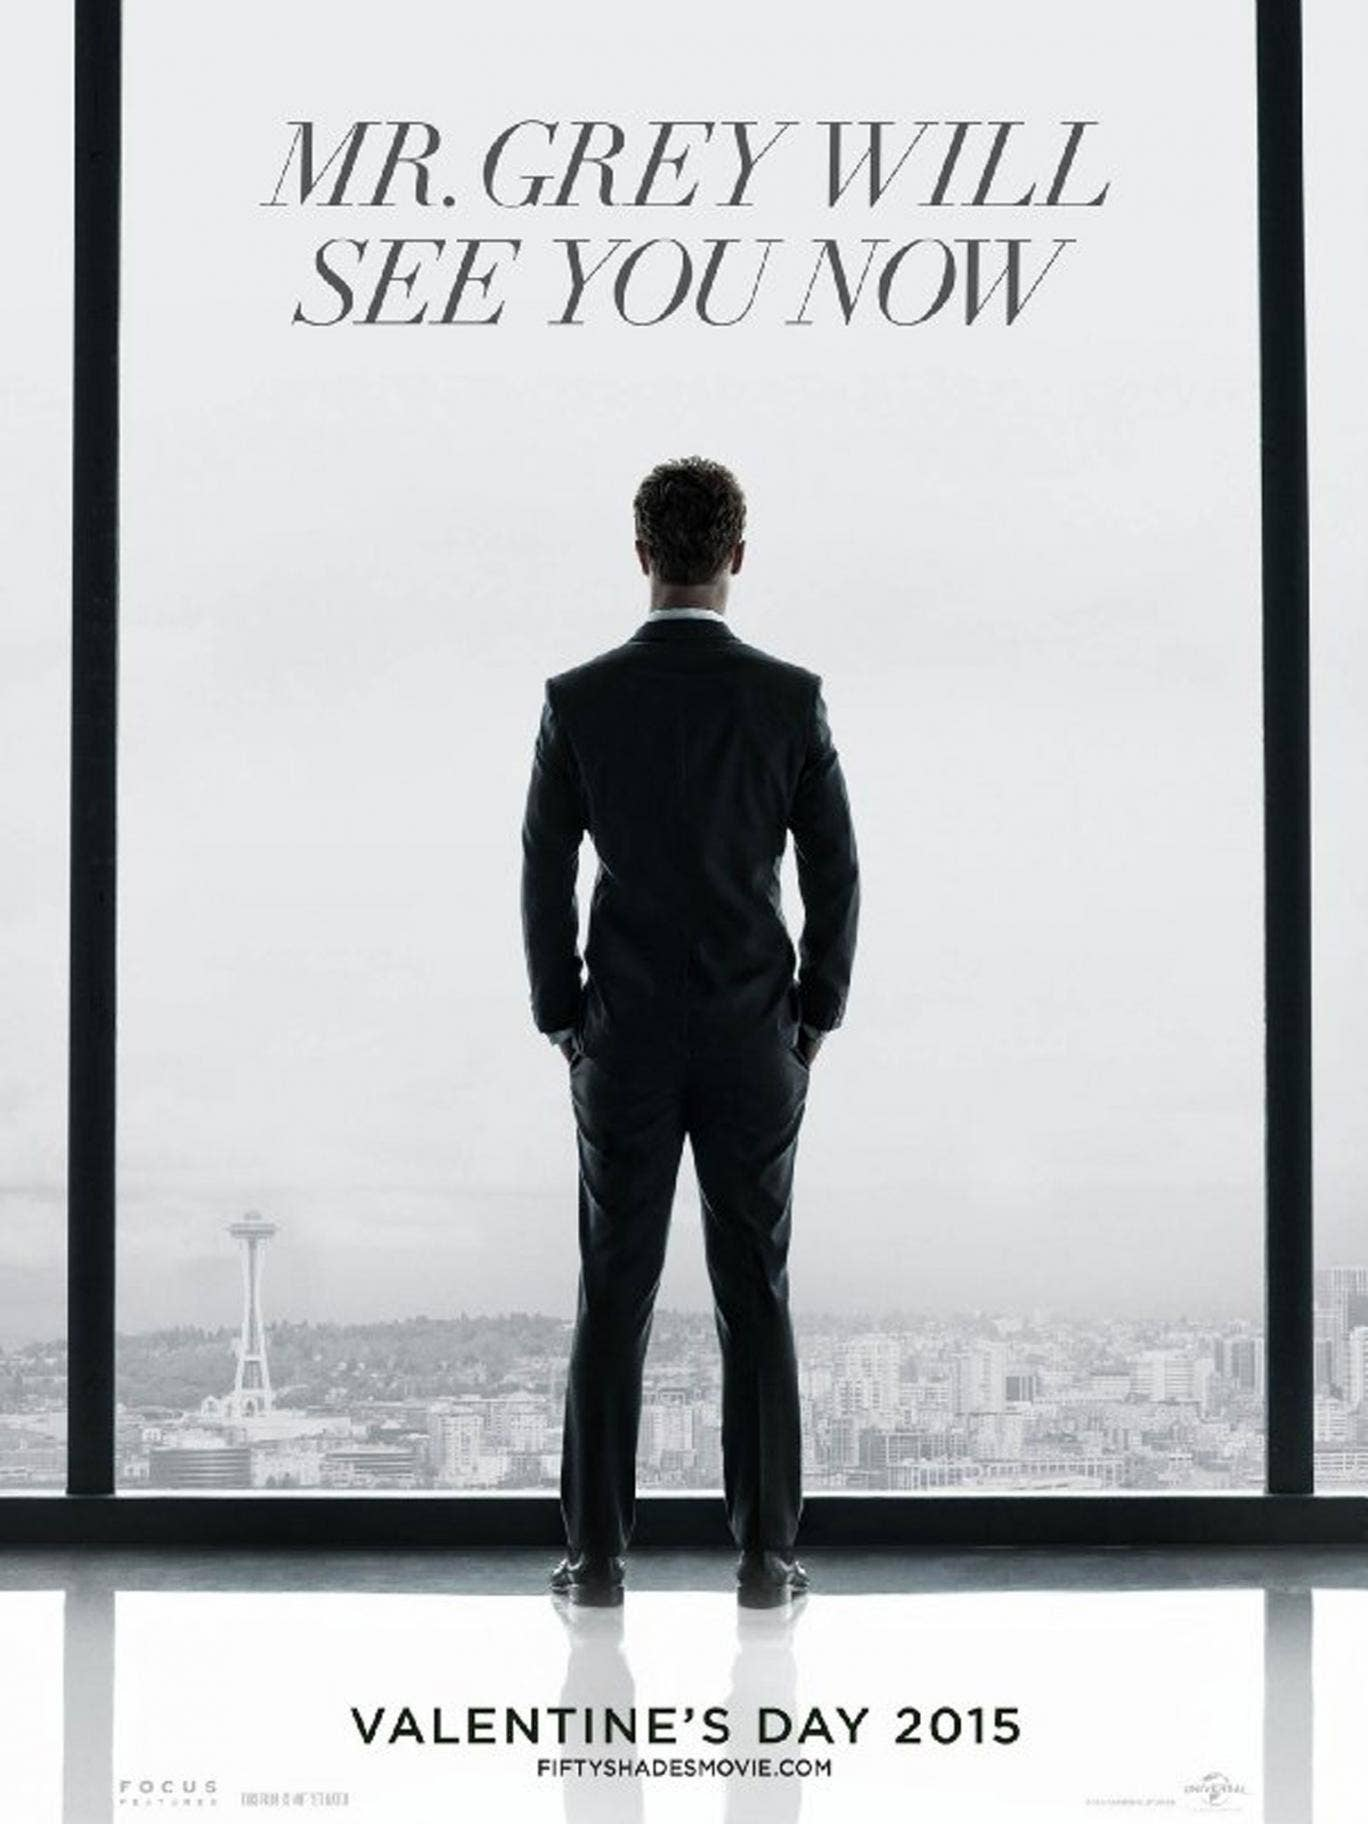 Jamie Dornan as Christian Grey in the Fifty Shades of Grey poster